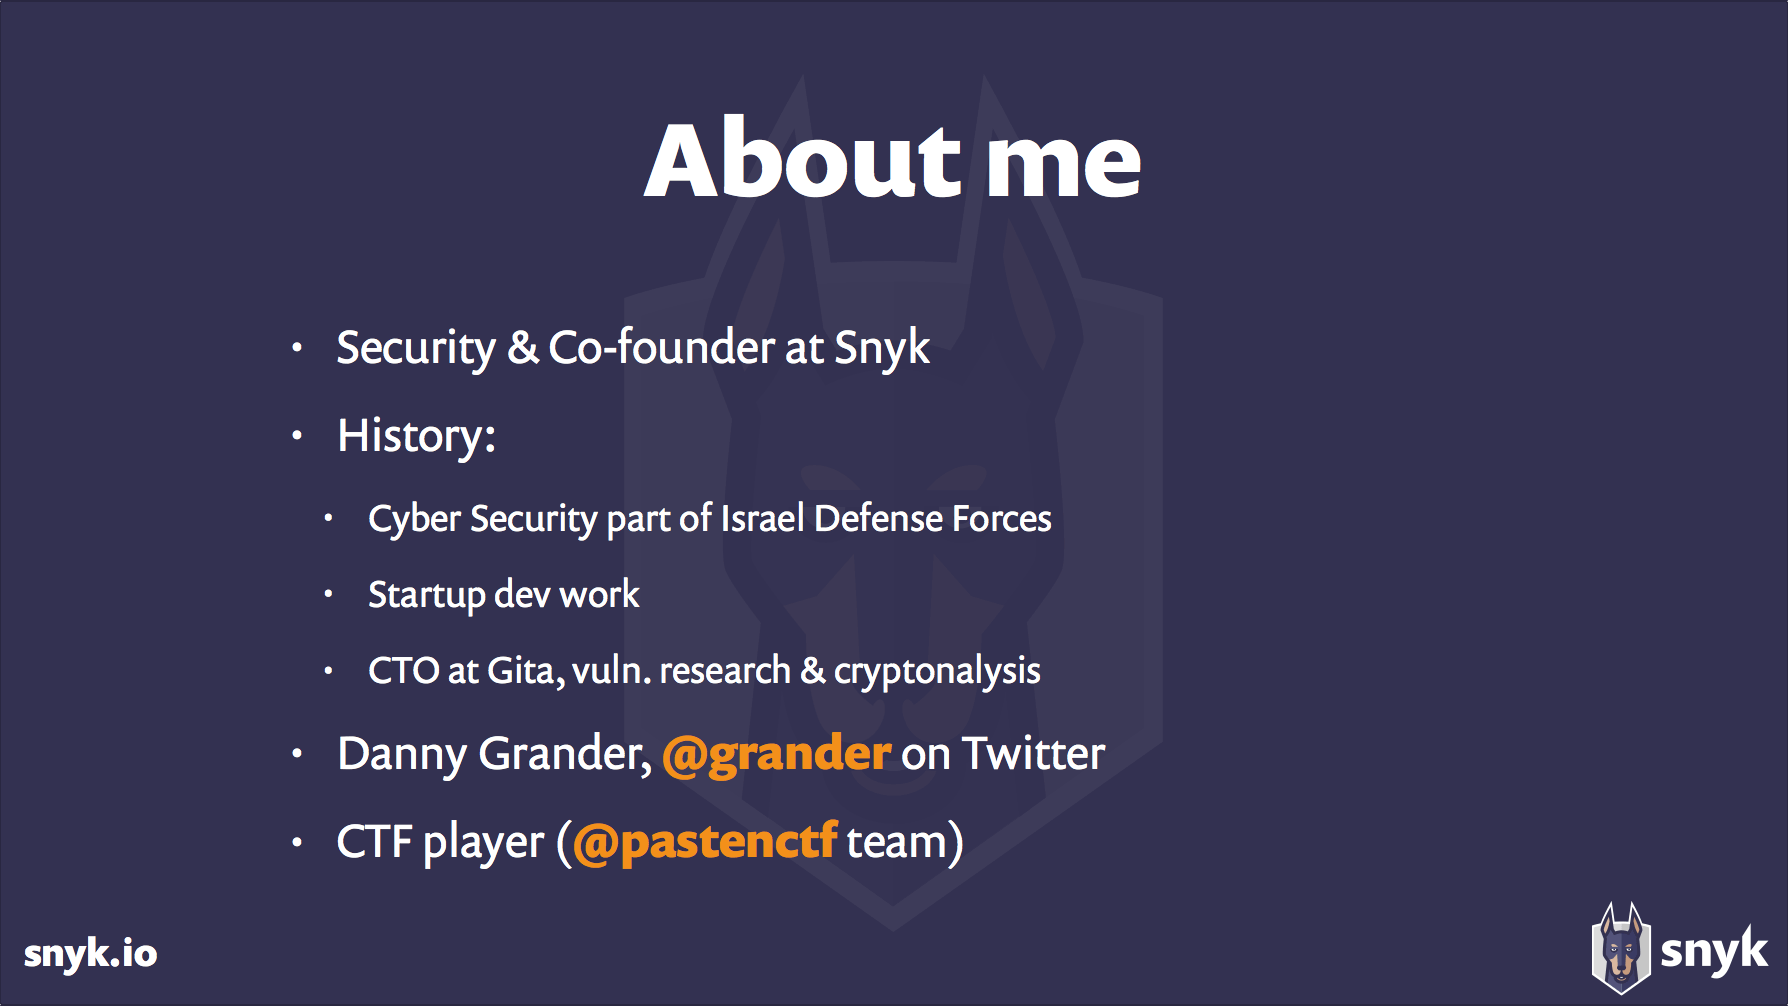 About Danny Grander of Snyk